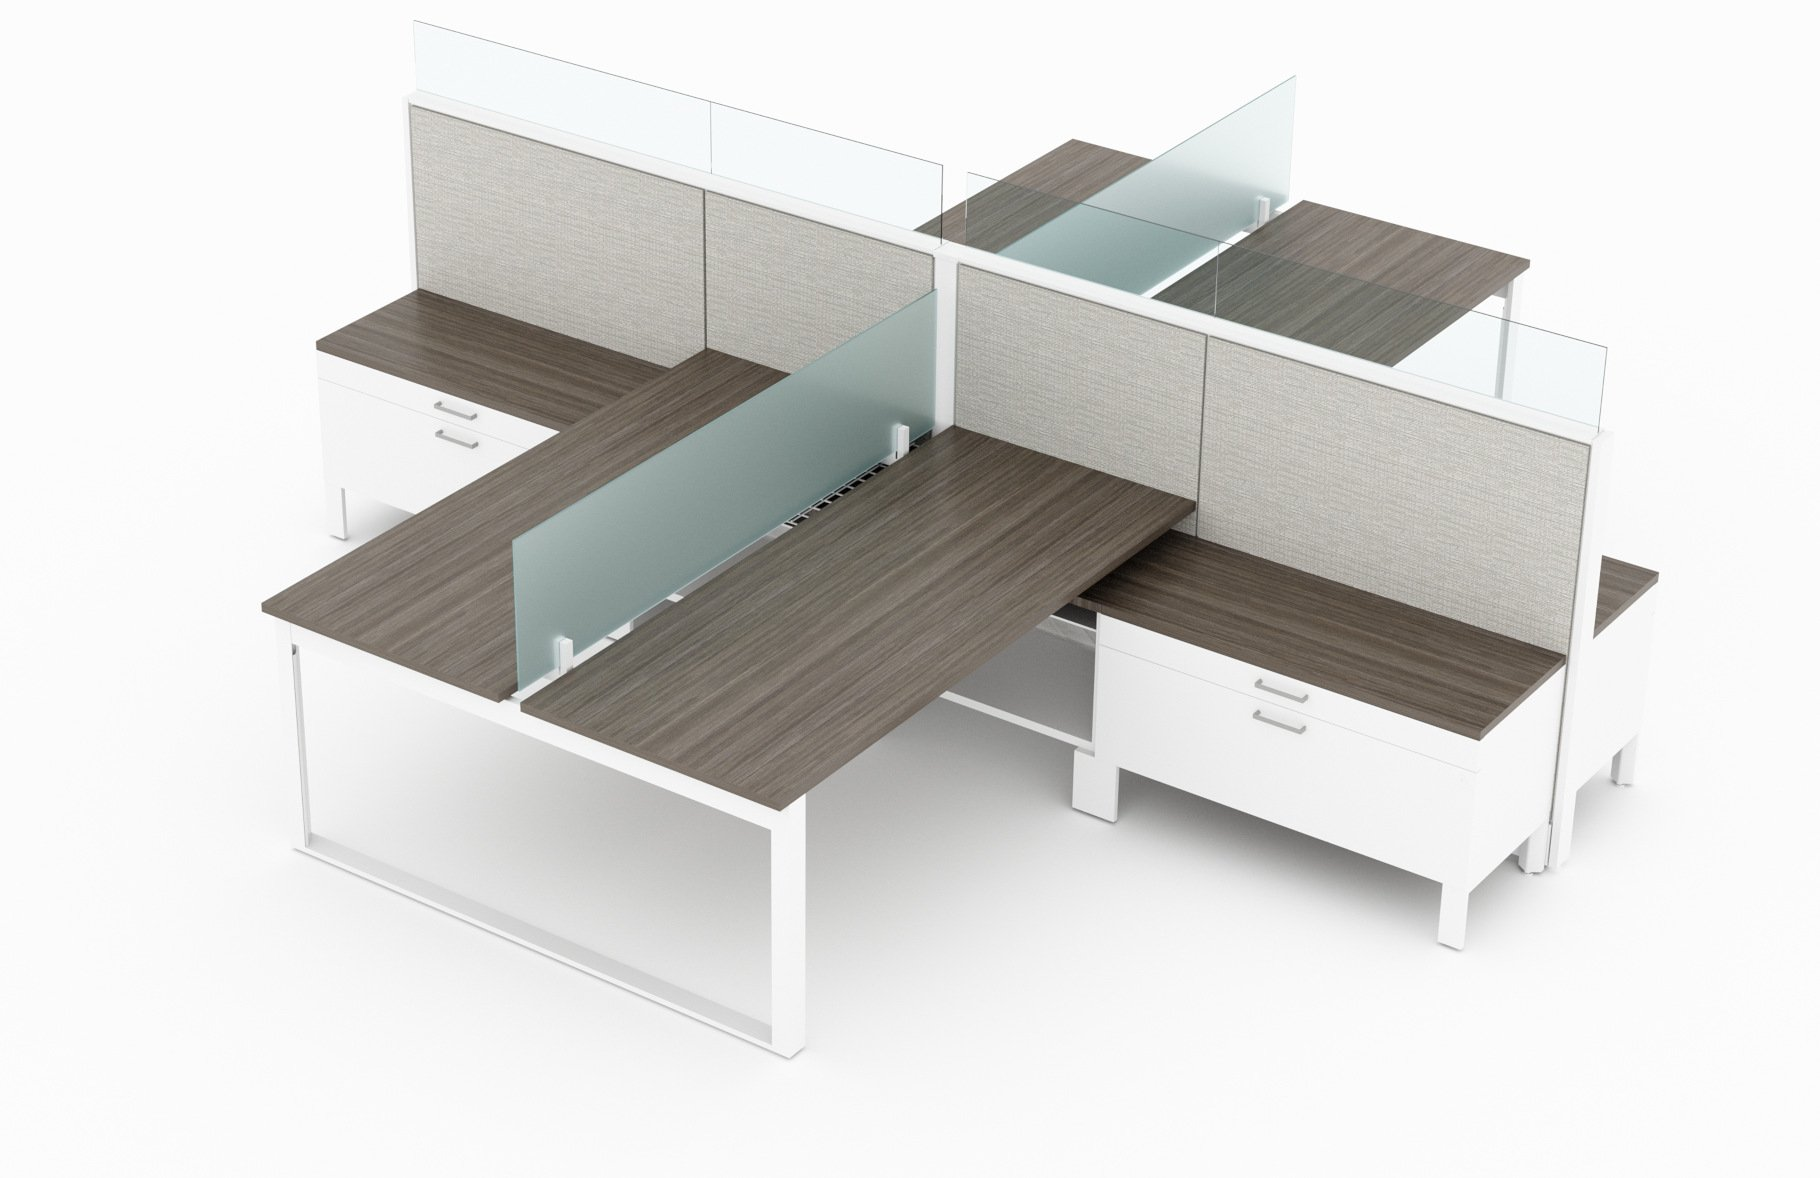 4-Person set of L-shaped workstations. Frameless Clear acrylic pieces make up the top of the partition, on one side of each workstation. Just below the main partition is a wide credenza, just under the work surface. At its side is a ledge for storing bags and purses. This is rendered on a white background. Model is EV507.